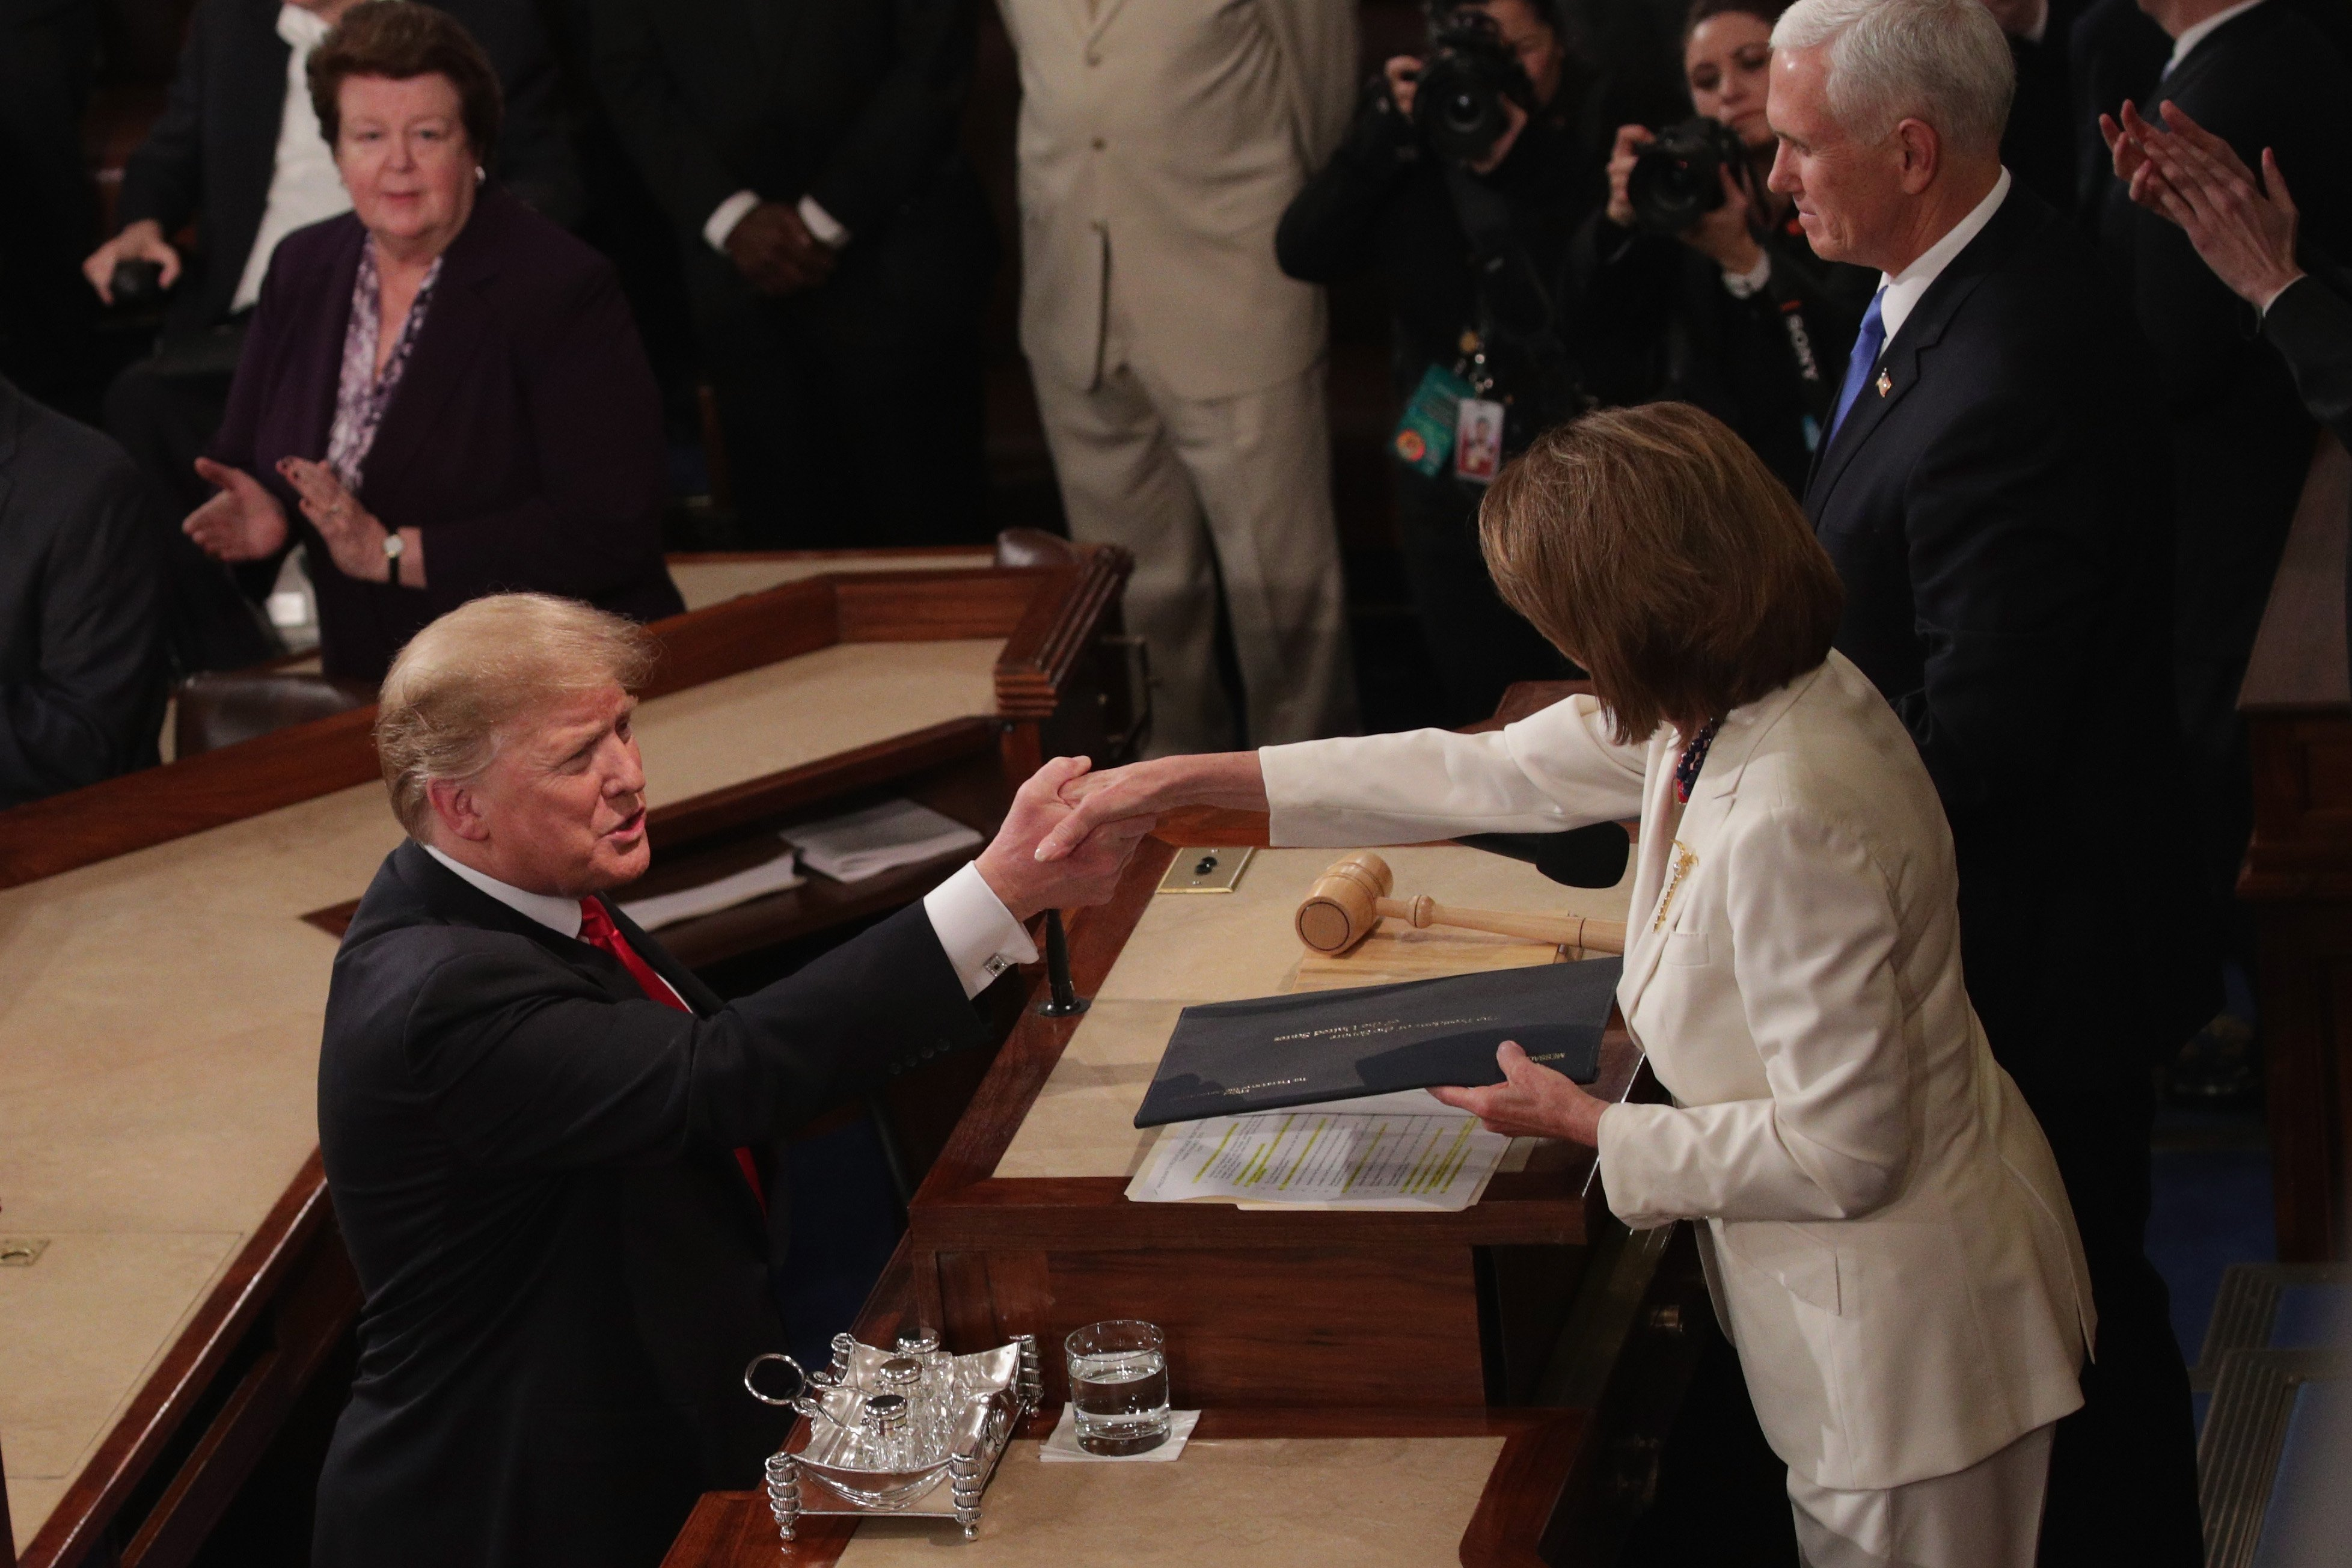 Nancy Pelosi greeting President Donald Trump at the State of the Union in February 2019 | Photo: Getty Images